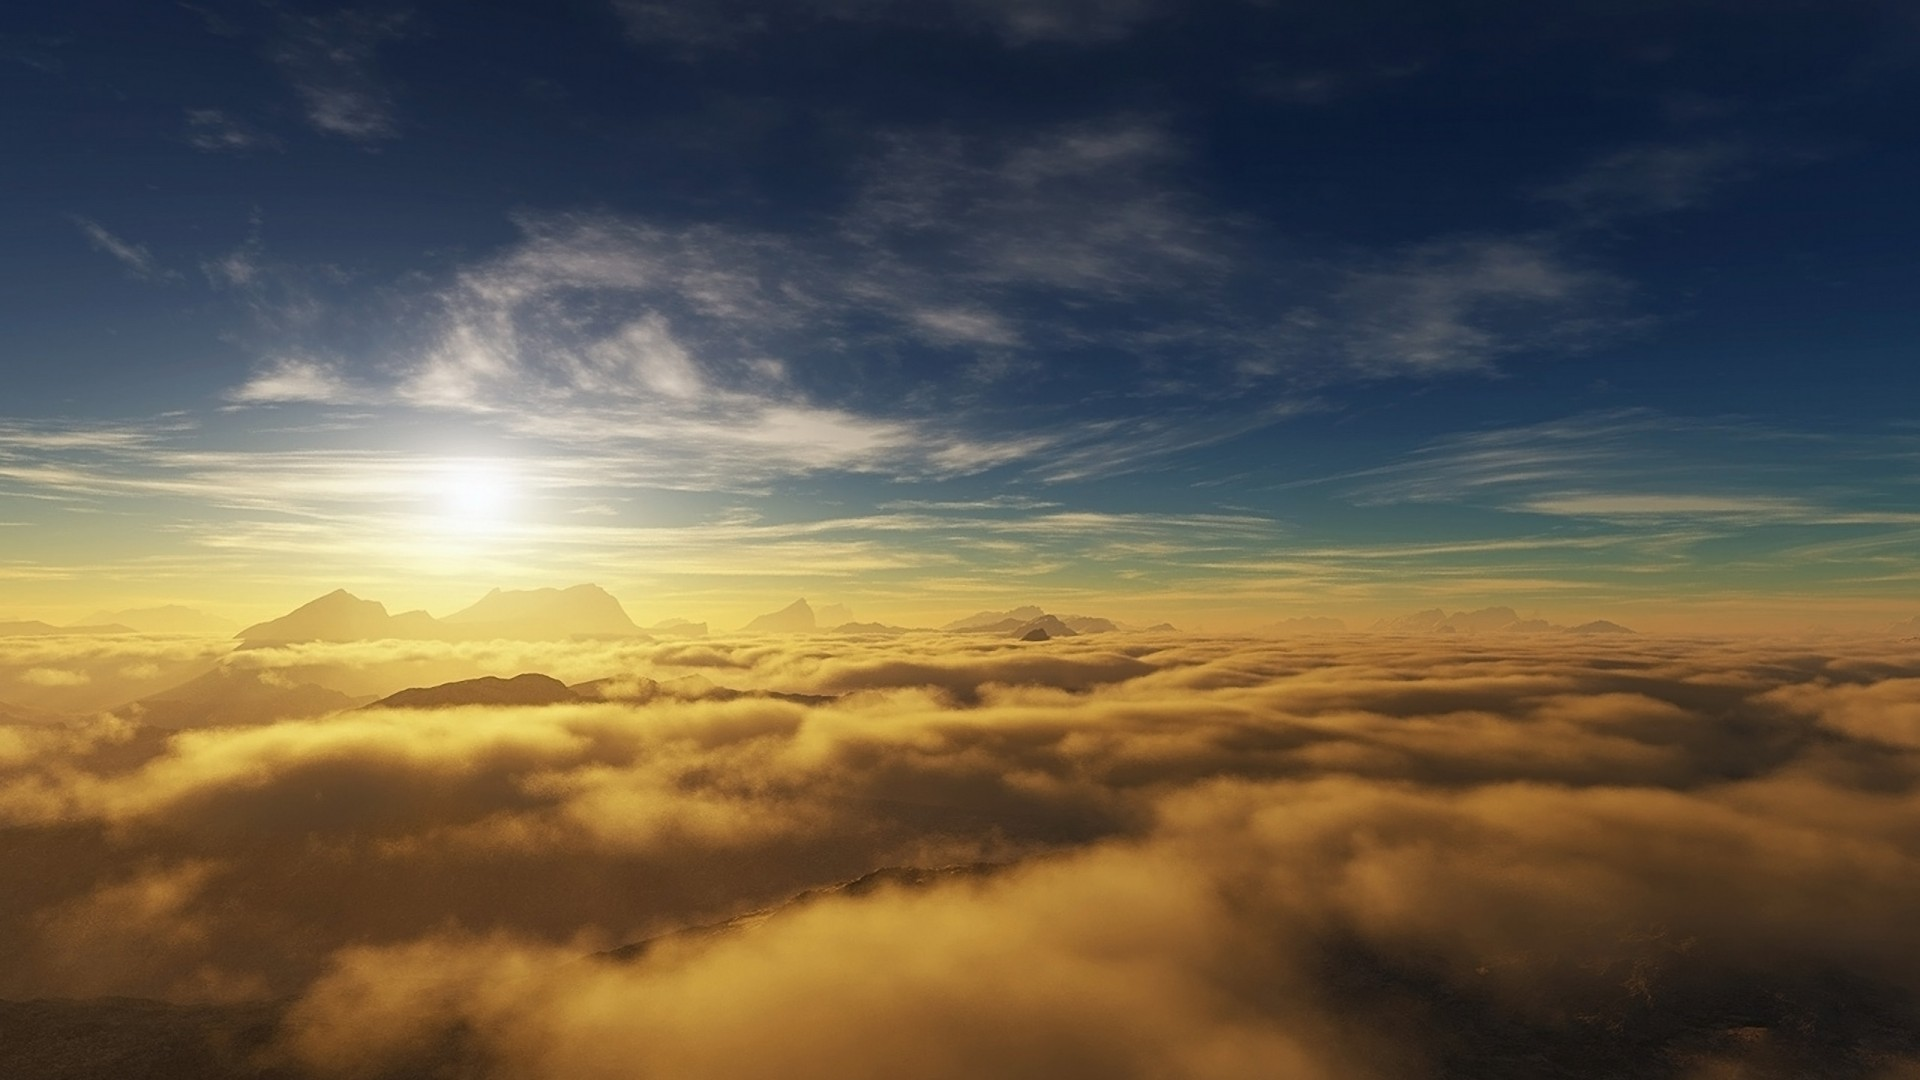 Cloud Background Images HD Wallpapers 1920x1080